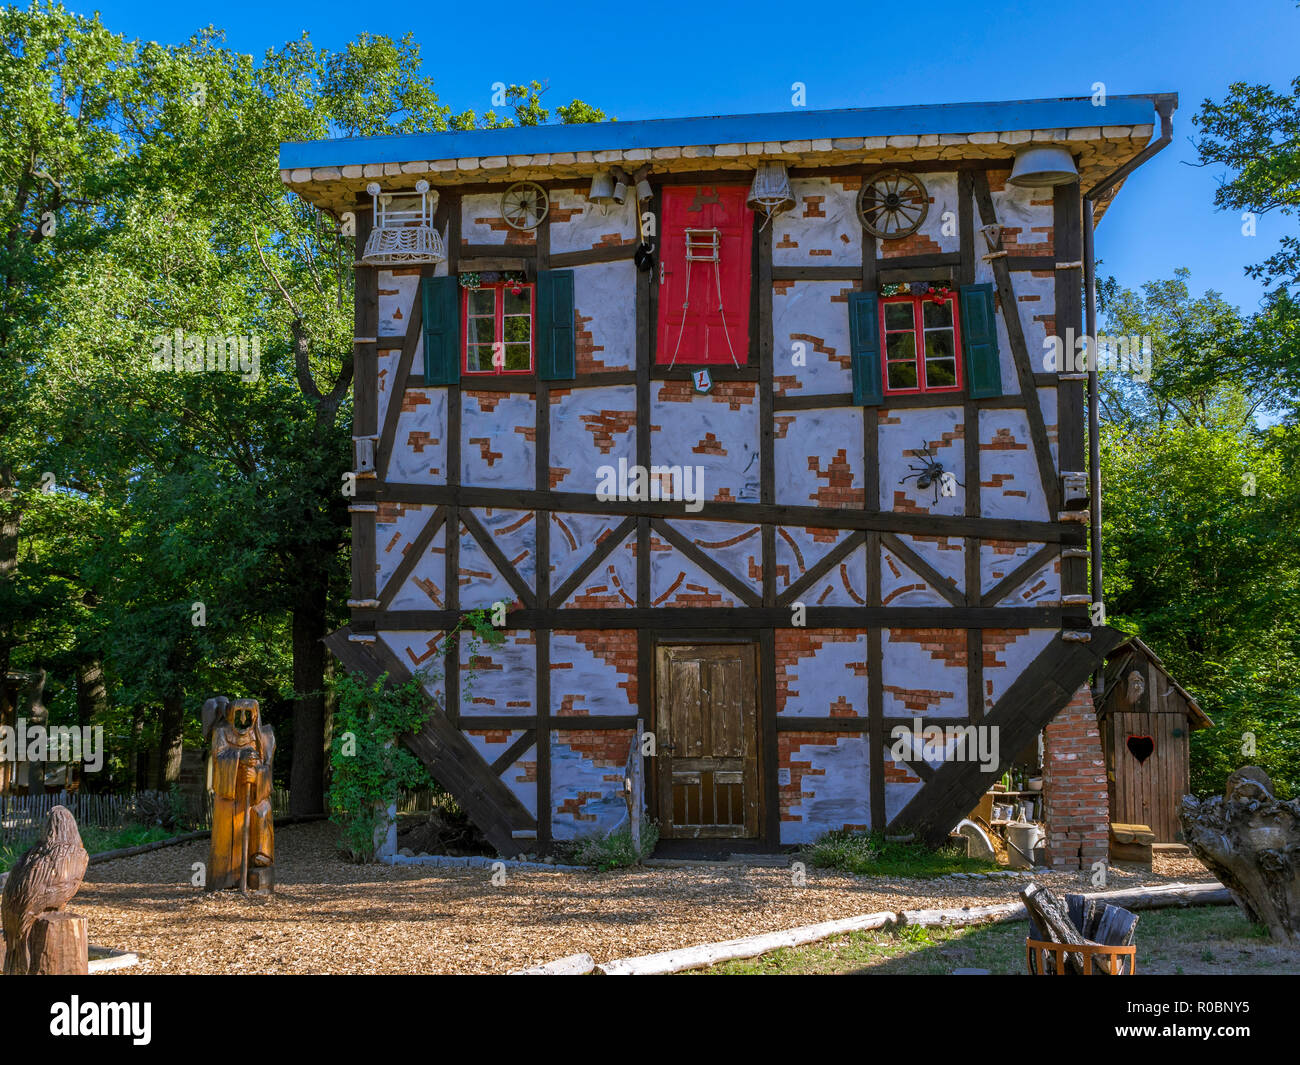 Witches house at Hexentanzplatz, the so called witches' dancing place near Thale, Eastern Harz, Saxony-Anhalt, Germany, Europe - Stock Image